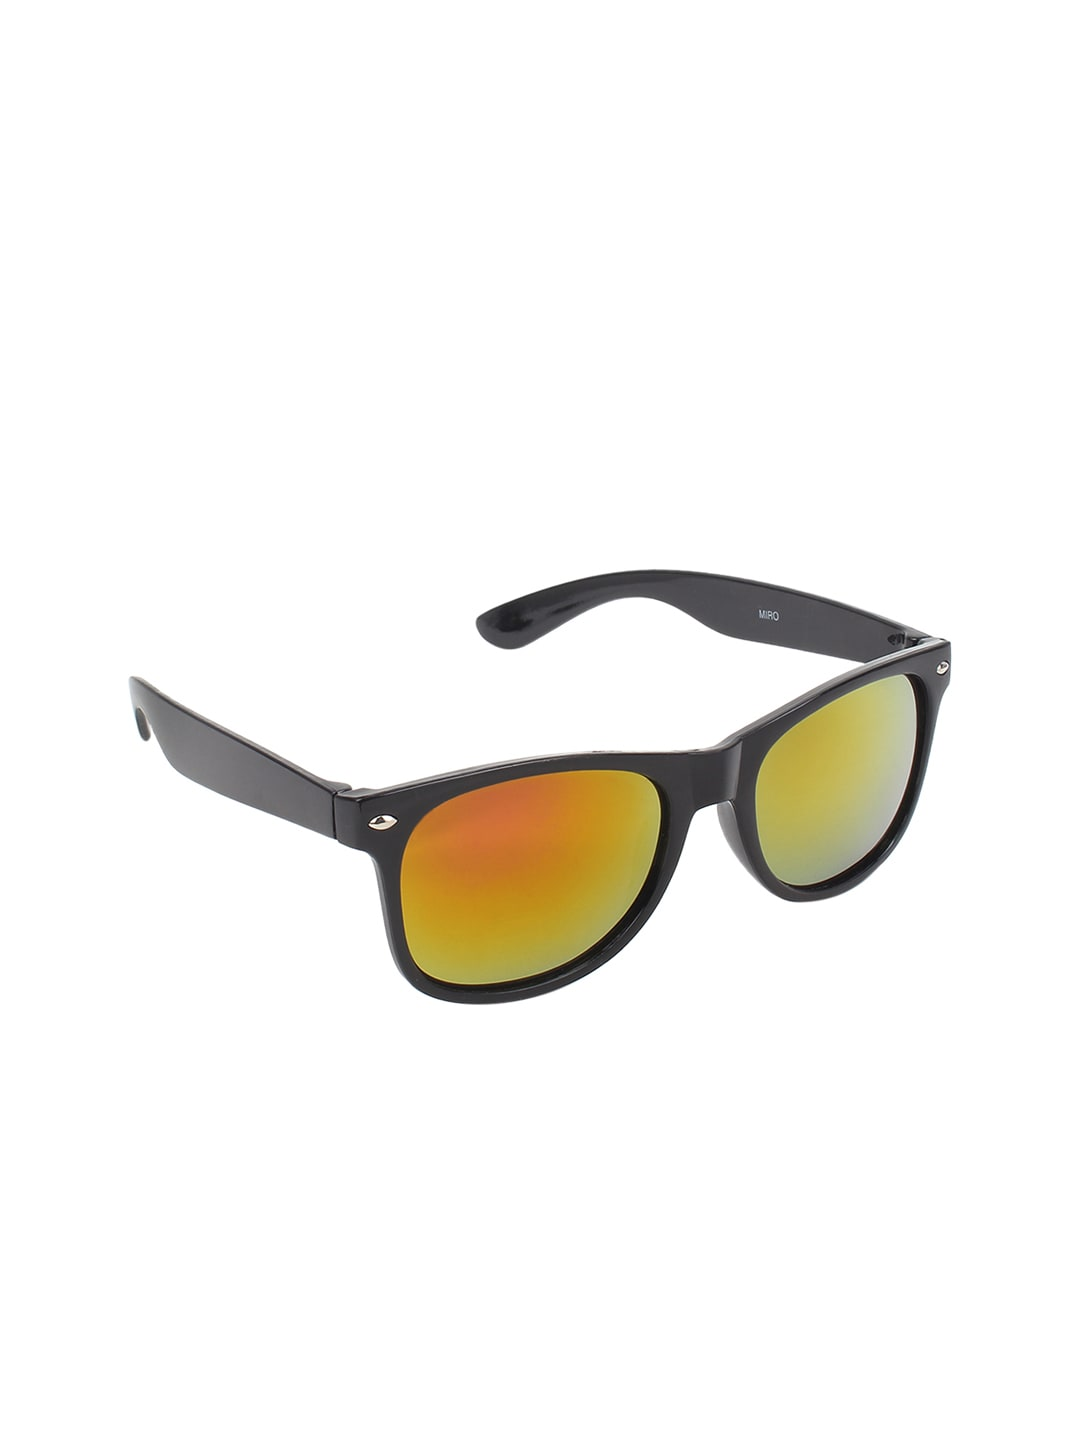 c15c83bb730a1 Wayfarer Eyewear - Buy Wayfarer Eyewear online in India